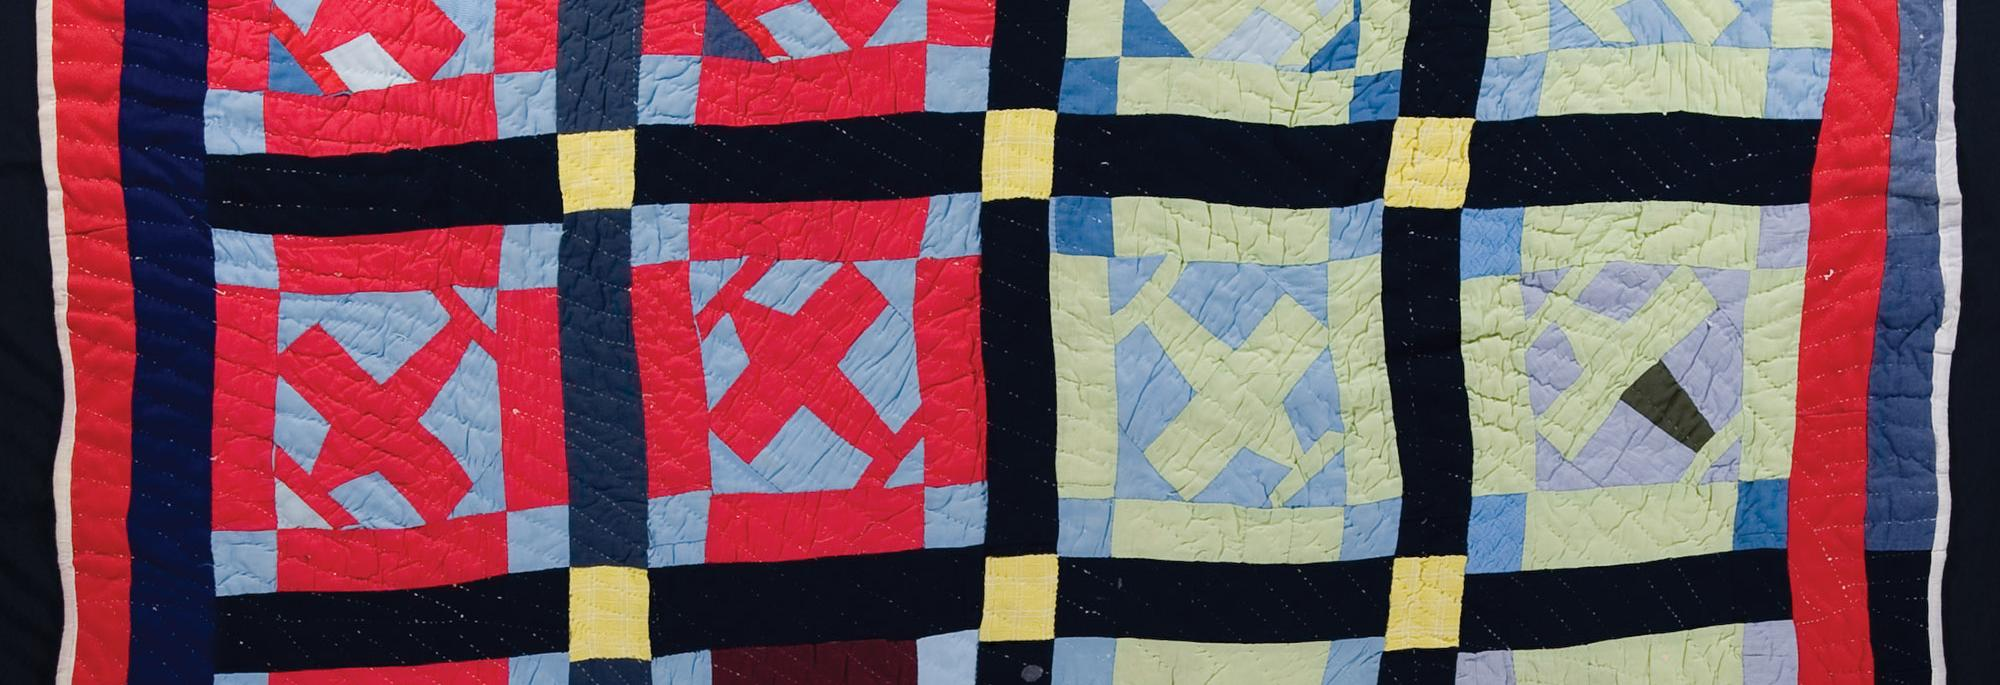 Airplane Quilt Image